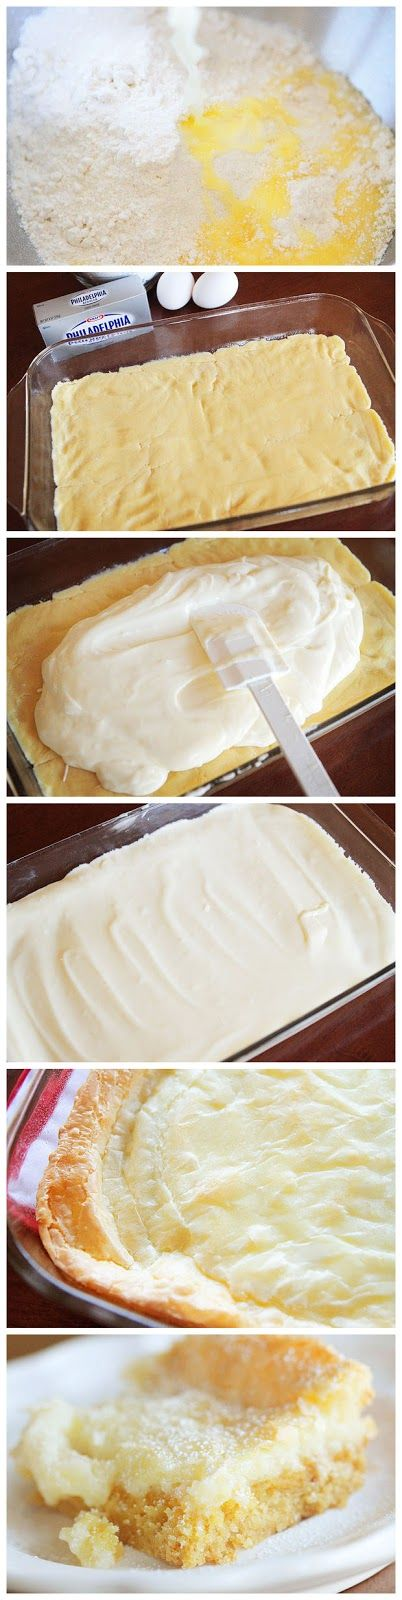 Chess Squares Mix yellow cake mix with 1 egg and1/2 cup melted butter to make soft dough.  Press into greased bottom of 9x13 pan.  Mix 4 cups 10x sugar with cream cheese, 1 tsp. vanilla & 2 eggs, pour over crust.  Bake 325 degree oven for 40-50 mins,